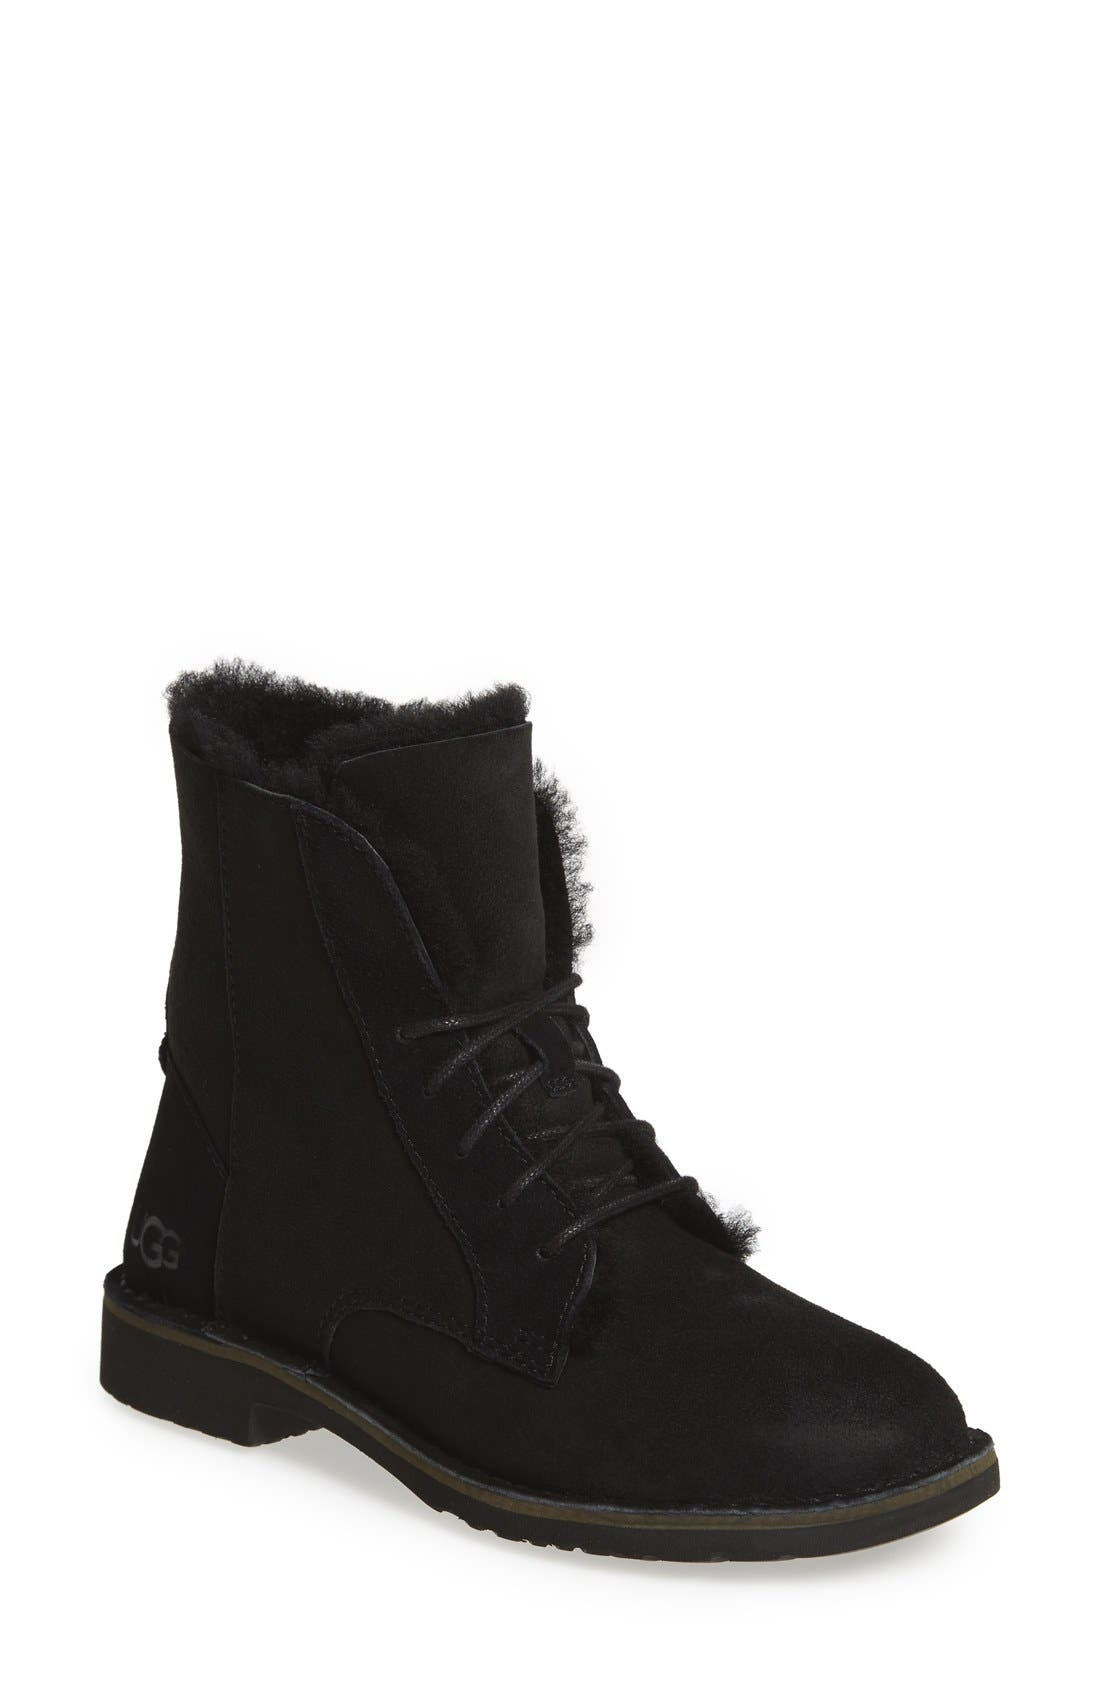 Alternate Image 1 Selected - UGG® Quincy Boot (Women)